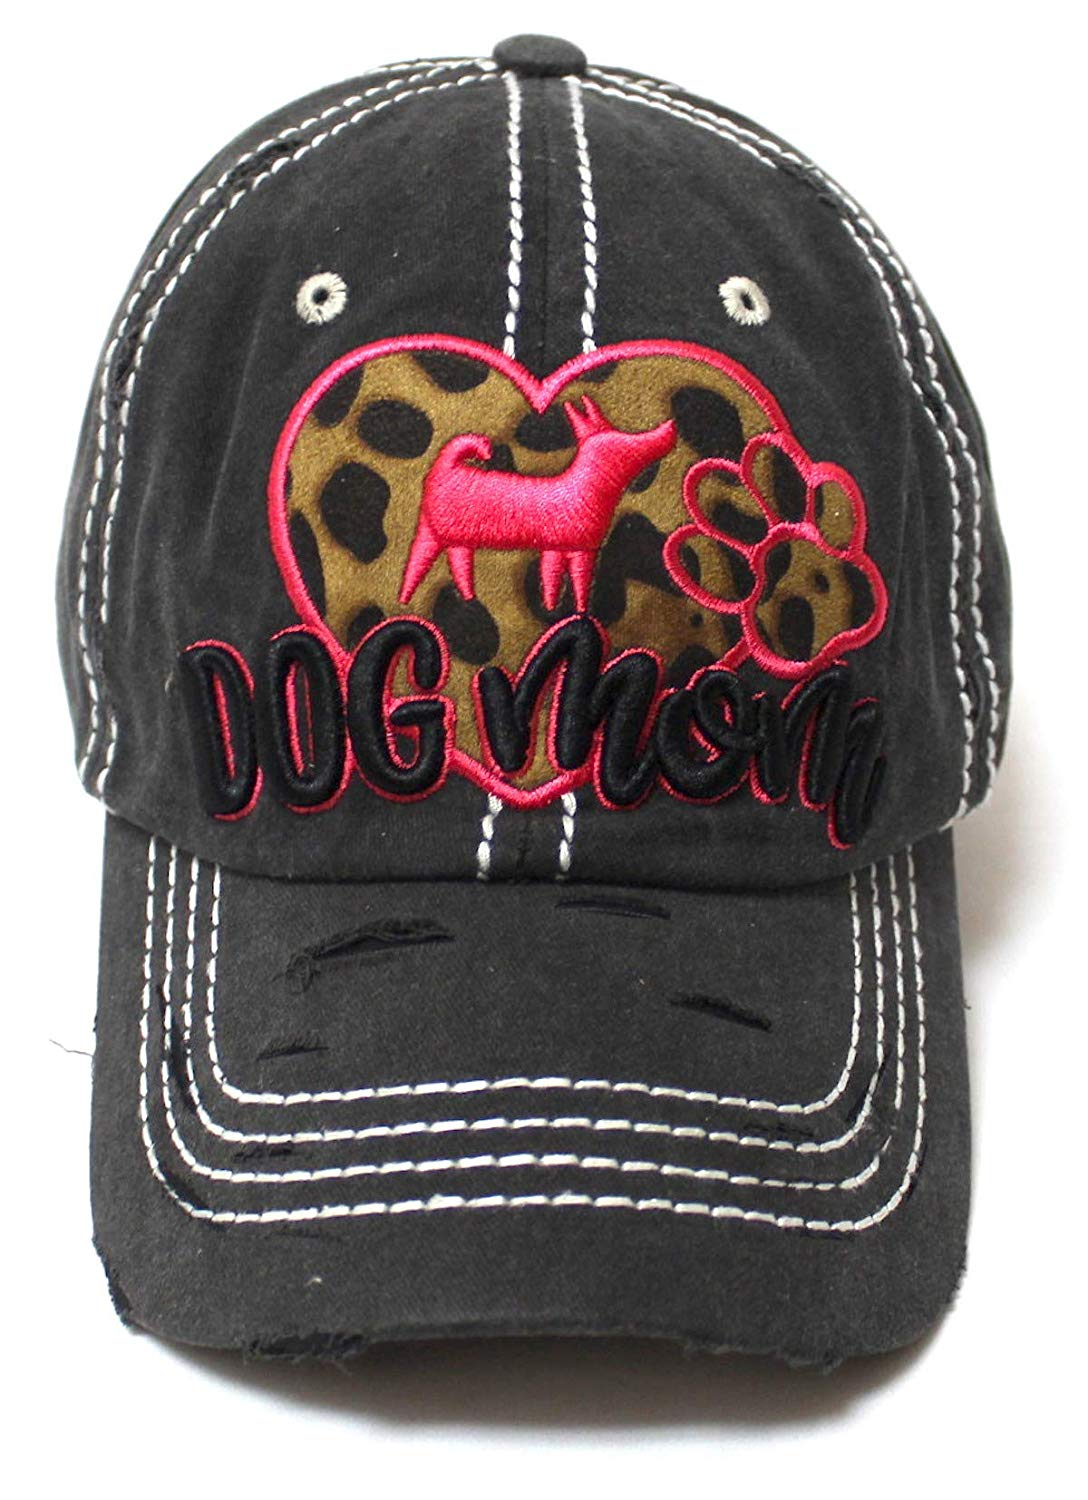 Leopard Print Heart, Dog Mom Monogram Embroidery, Paw Print Embroidery Adjustable Hat, Vintage Black